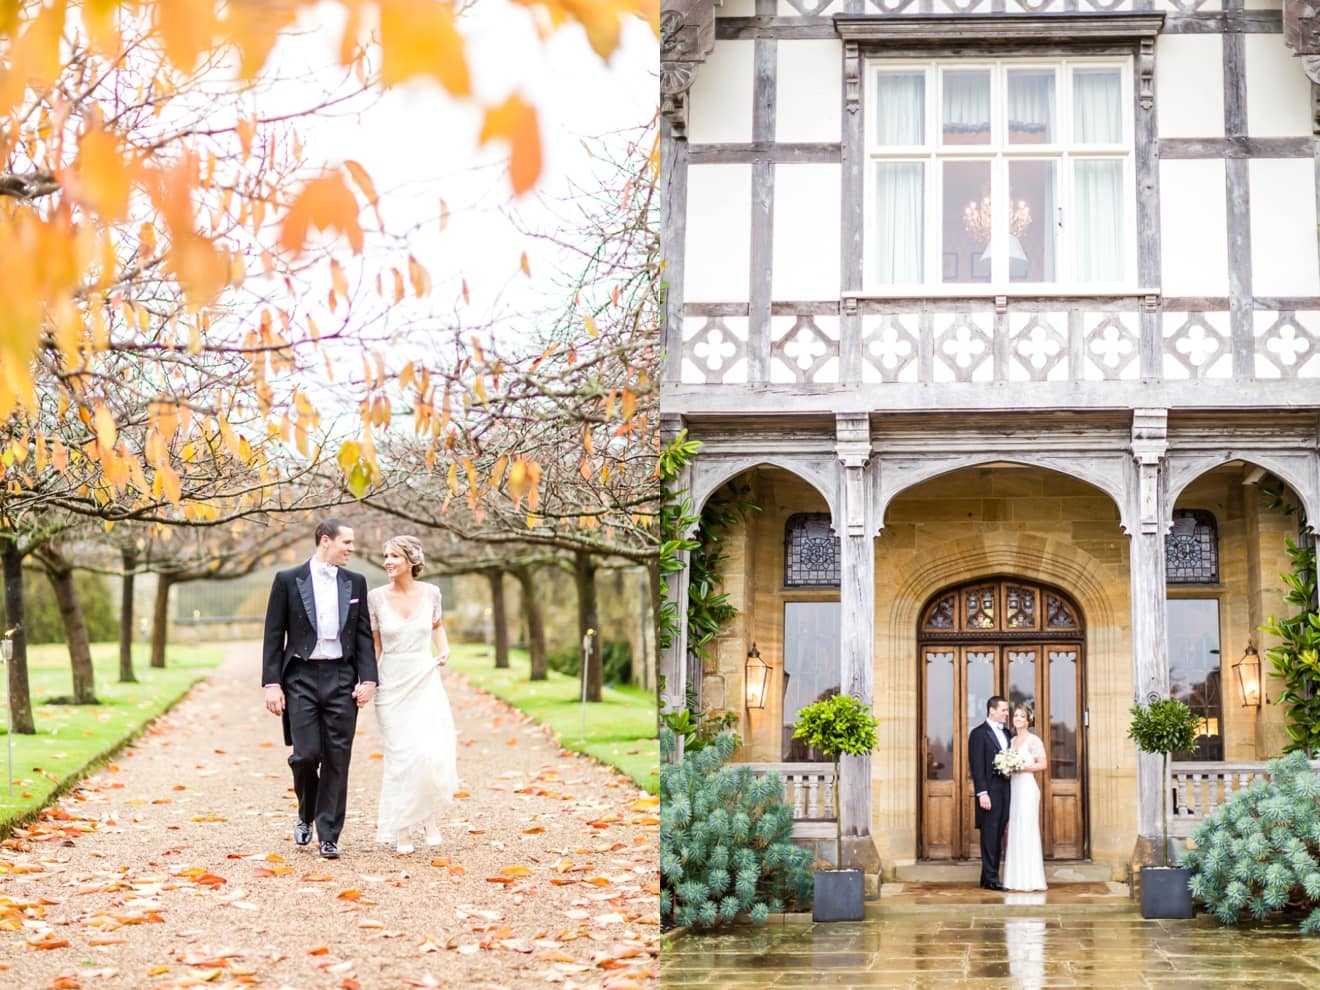 8-cowdary-house-sussex-wedding-photography-eddie-judd-photography